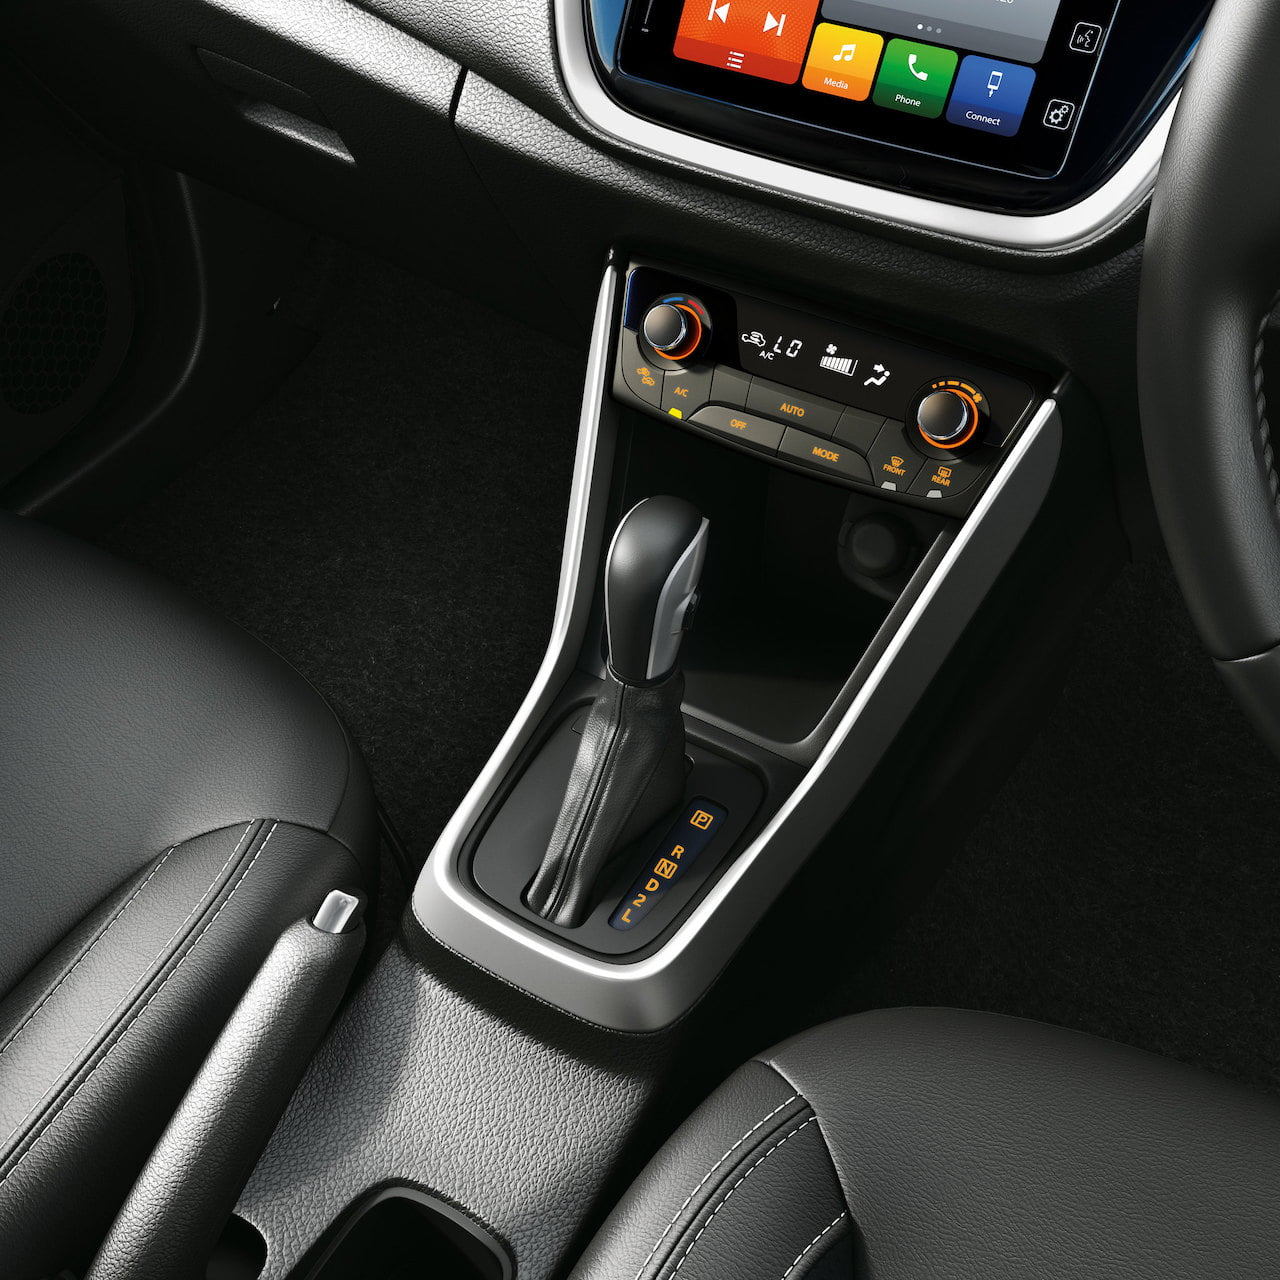 Maruti S-Cross automatic gearshift lever